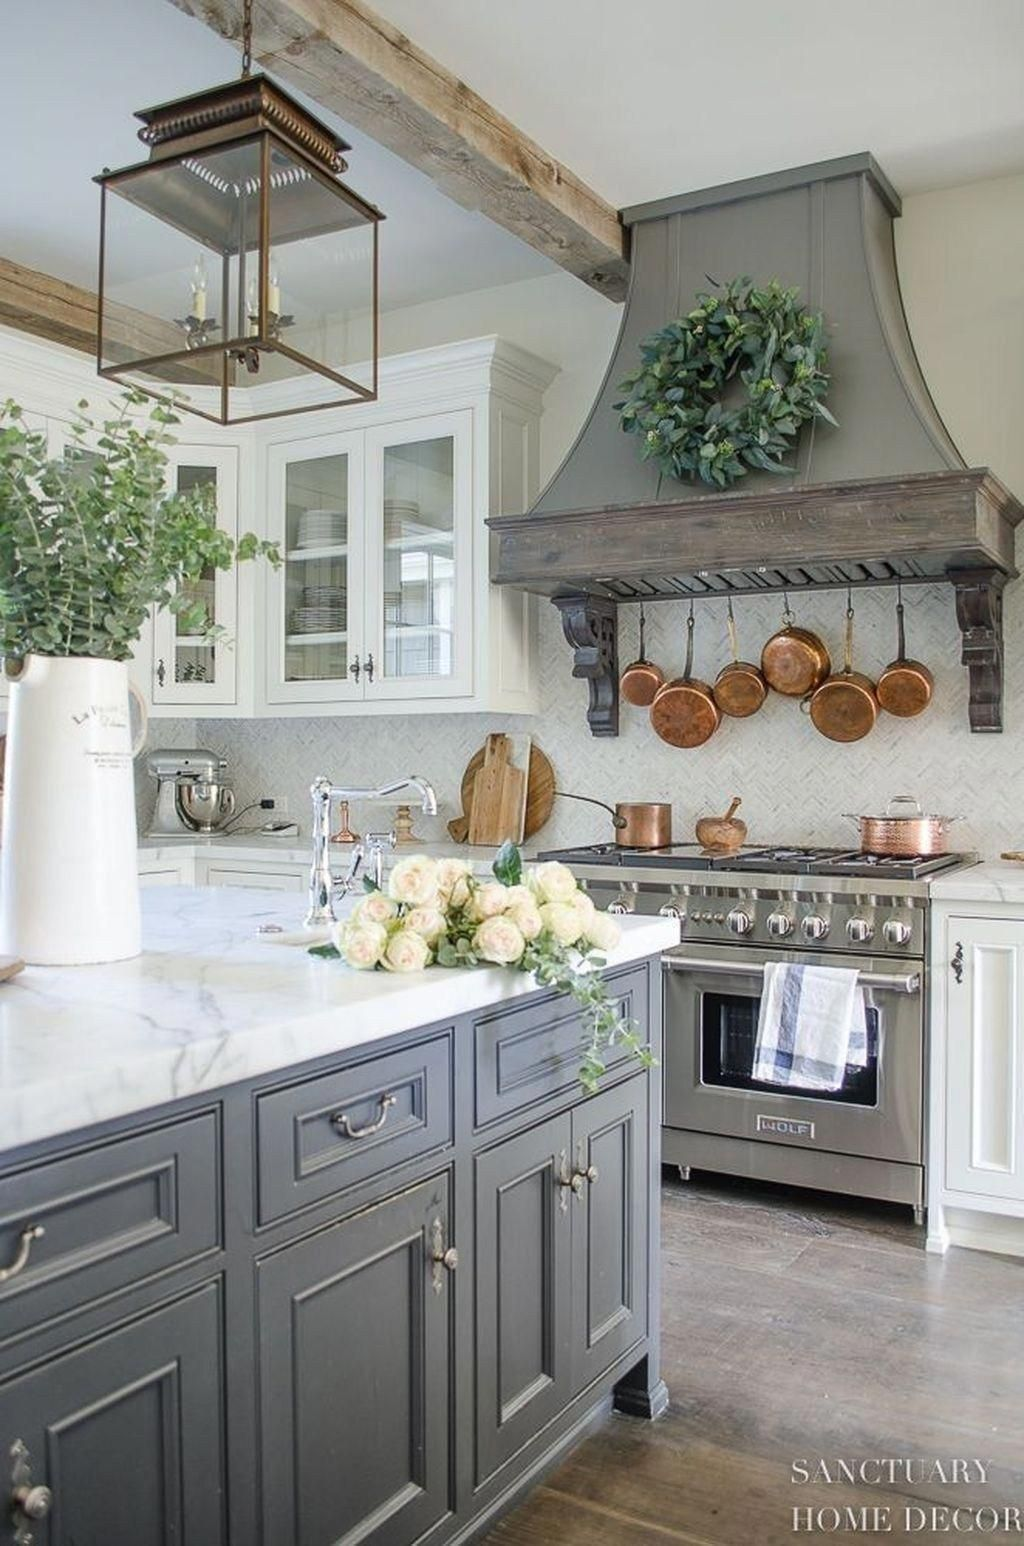 48 The Best French Country Style Kitchen Decor Ideas Pimphomee Country Style Kitchen Glass Kitchen Cabinets Home Decor Kitchen